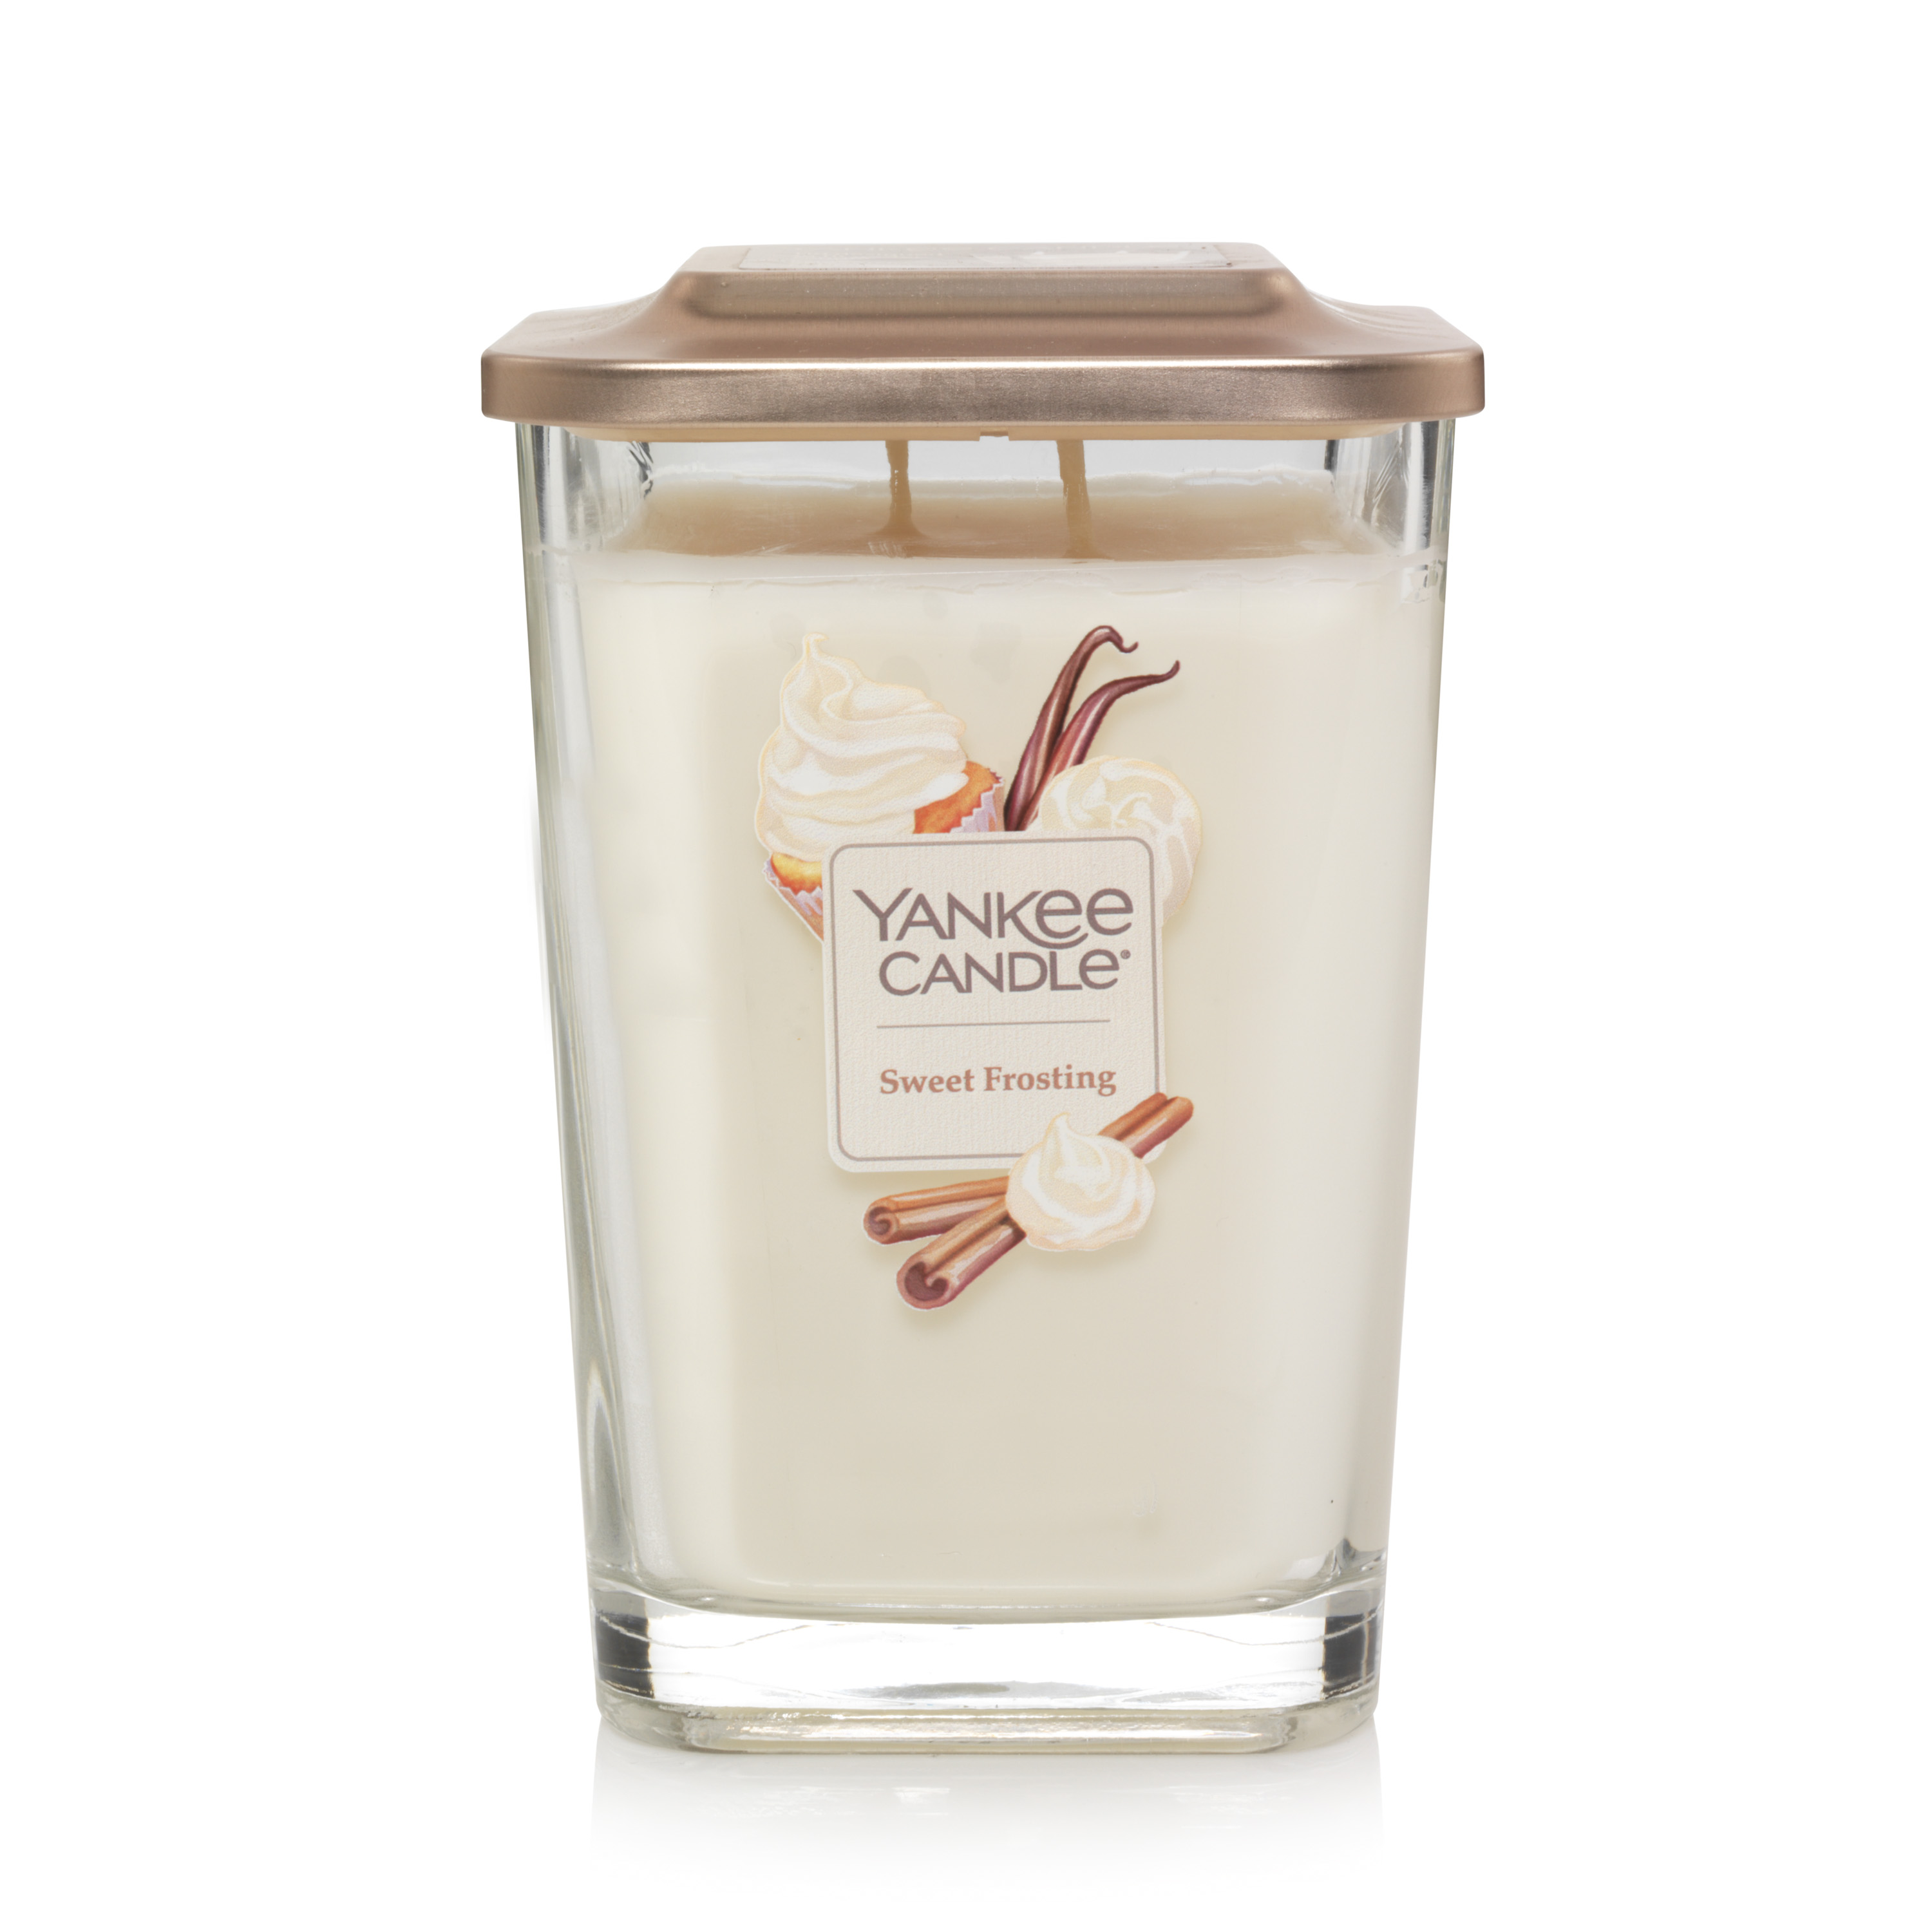 Yankee Candle Elevation Collection with Platform Lid Large 2-Wick Square Candle, Sweet Frosting